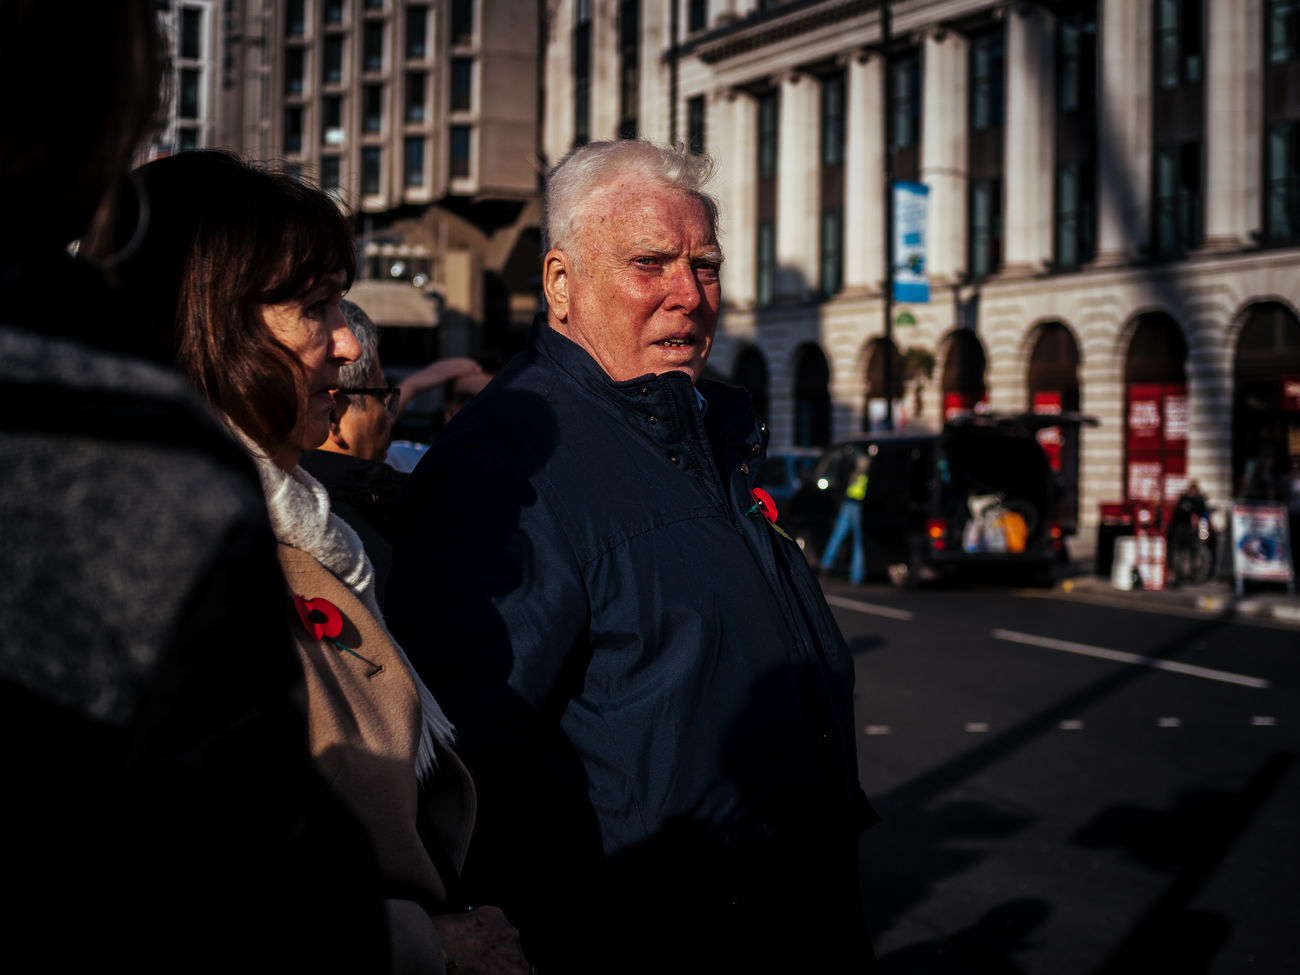 Tottenham Court Road Candid Photo Street Photography Maxgor.com Olympus Pen F 50mm Prime Lens Cıty Rawstreets London London Lifestyle Streetphotography Colors Peope Portrait Street Portrait City Life